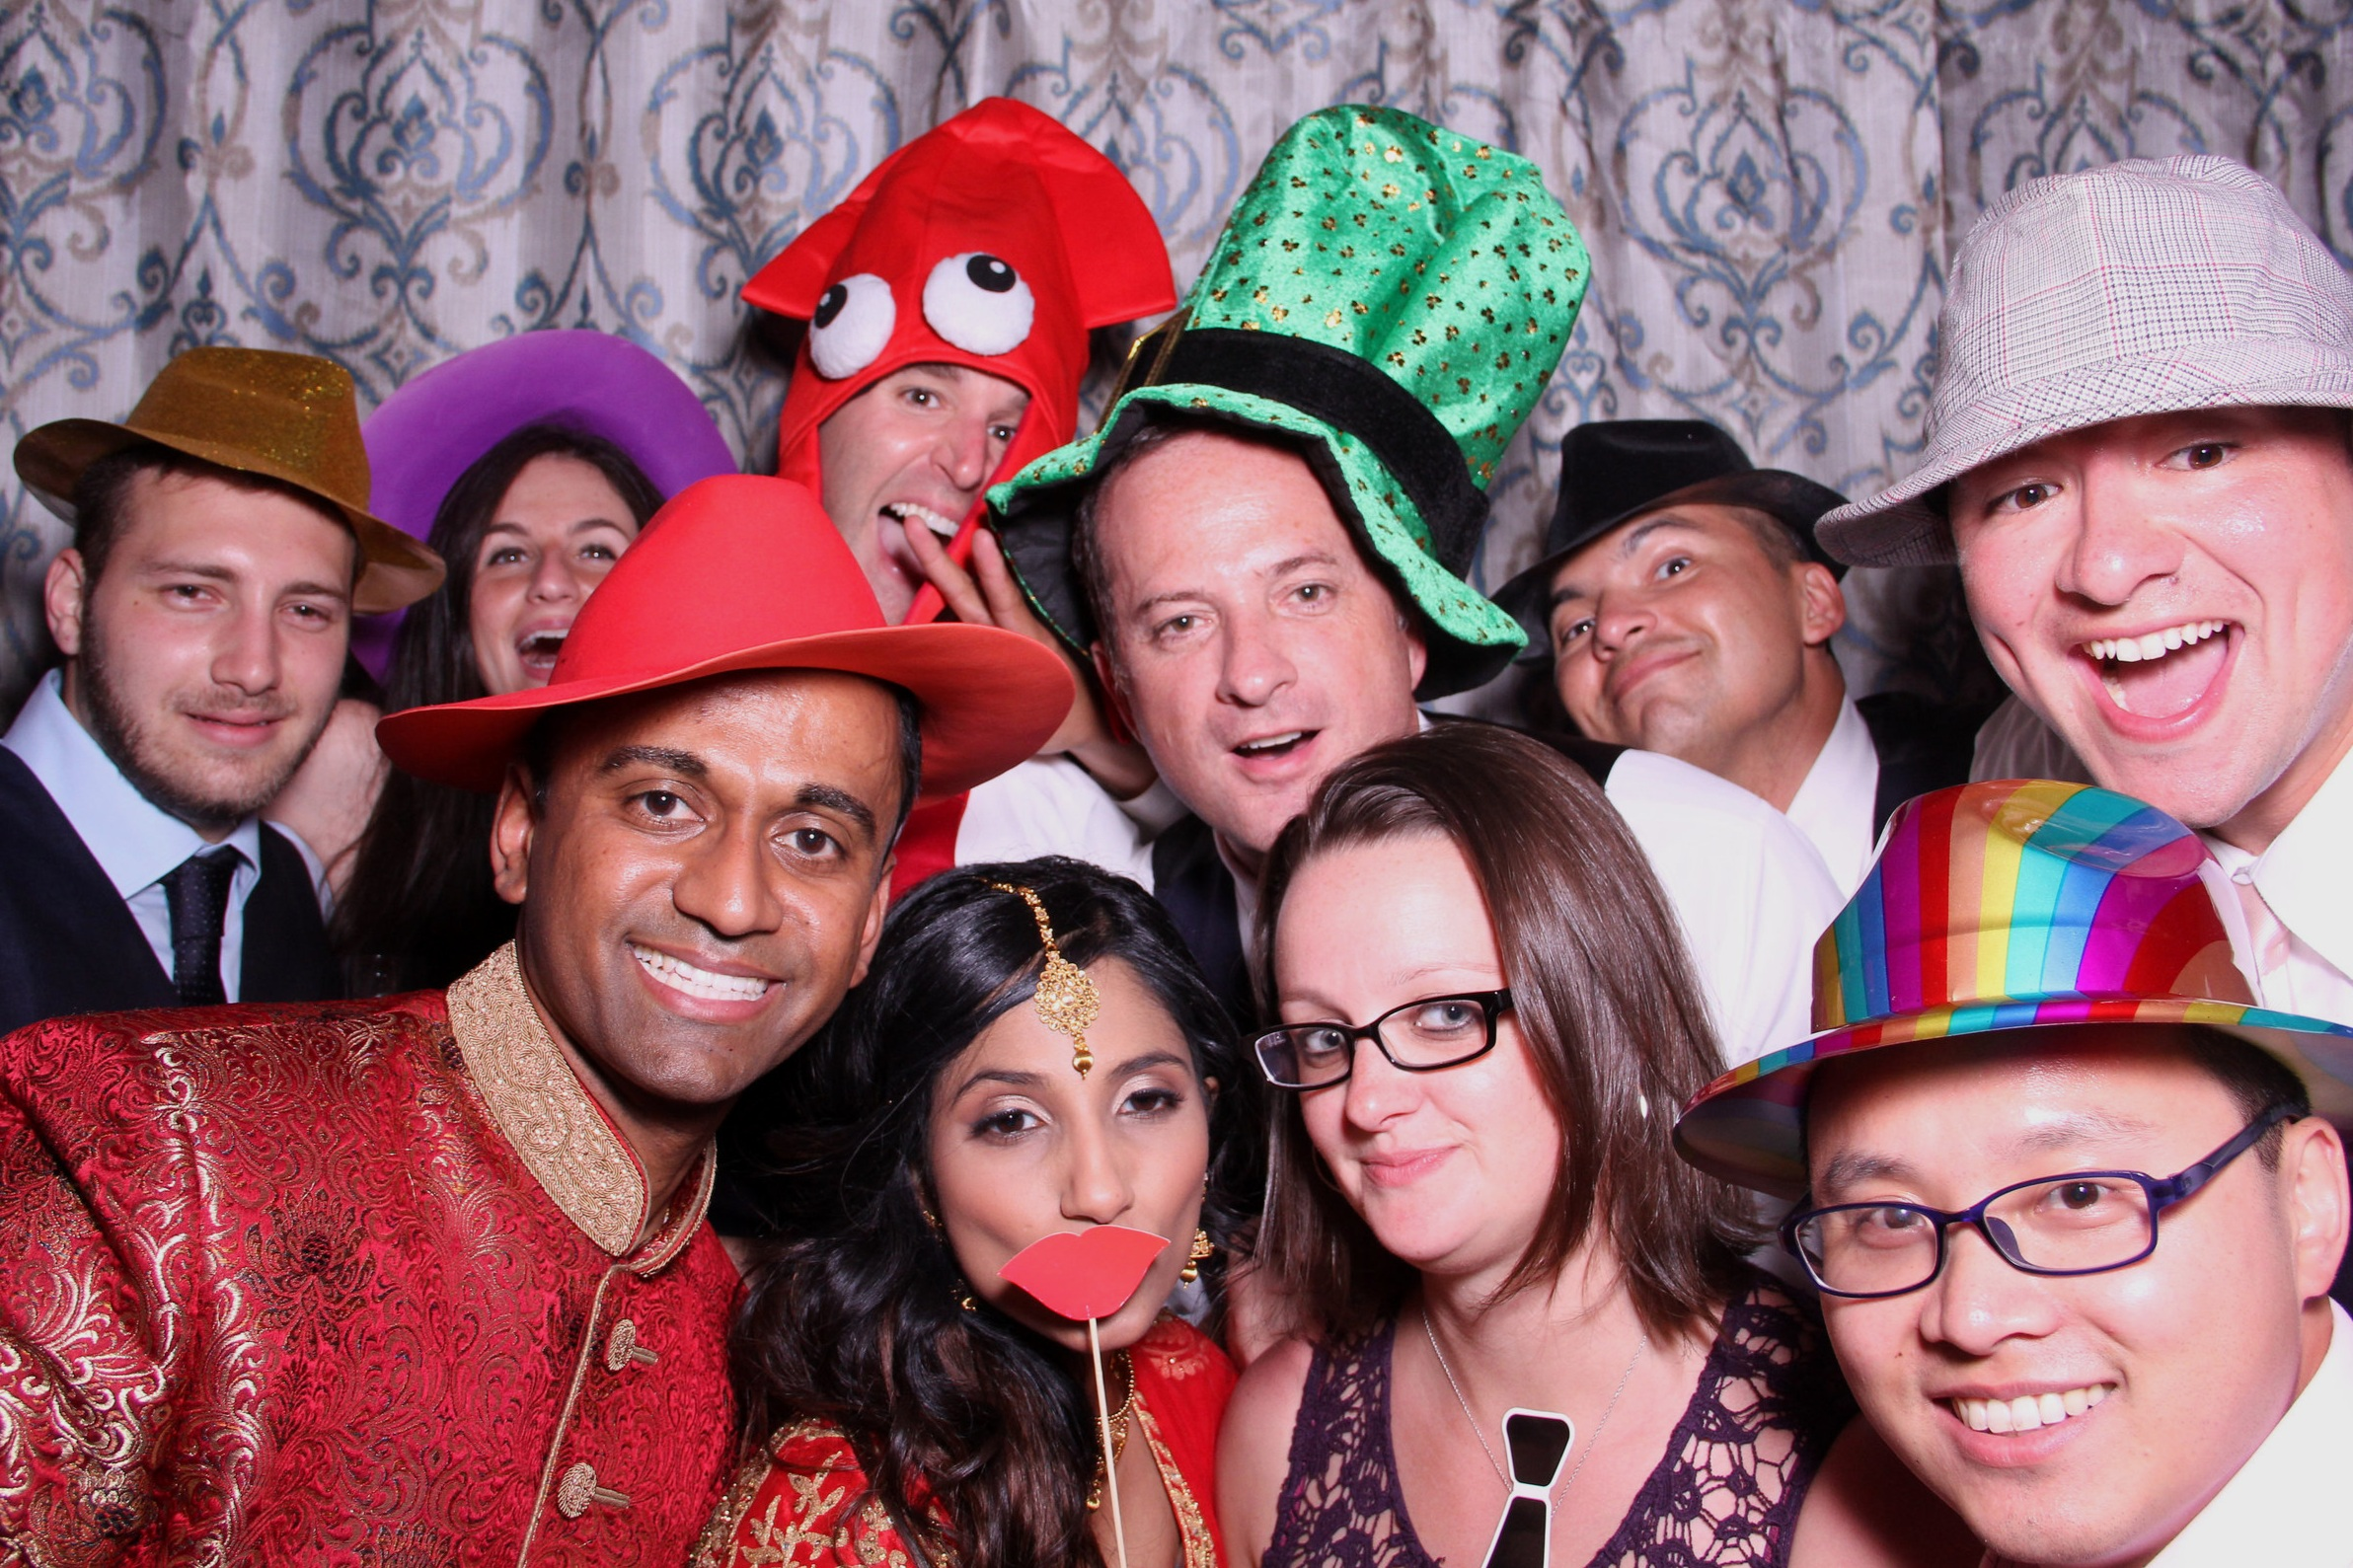 PHOTO-BOOTH - Fun For Everyone!